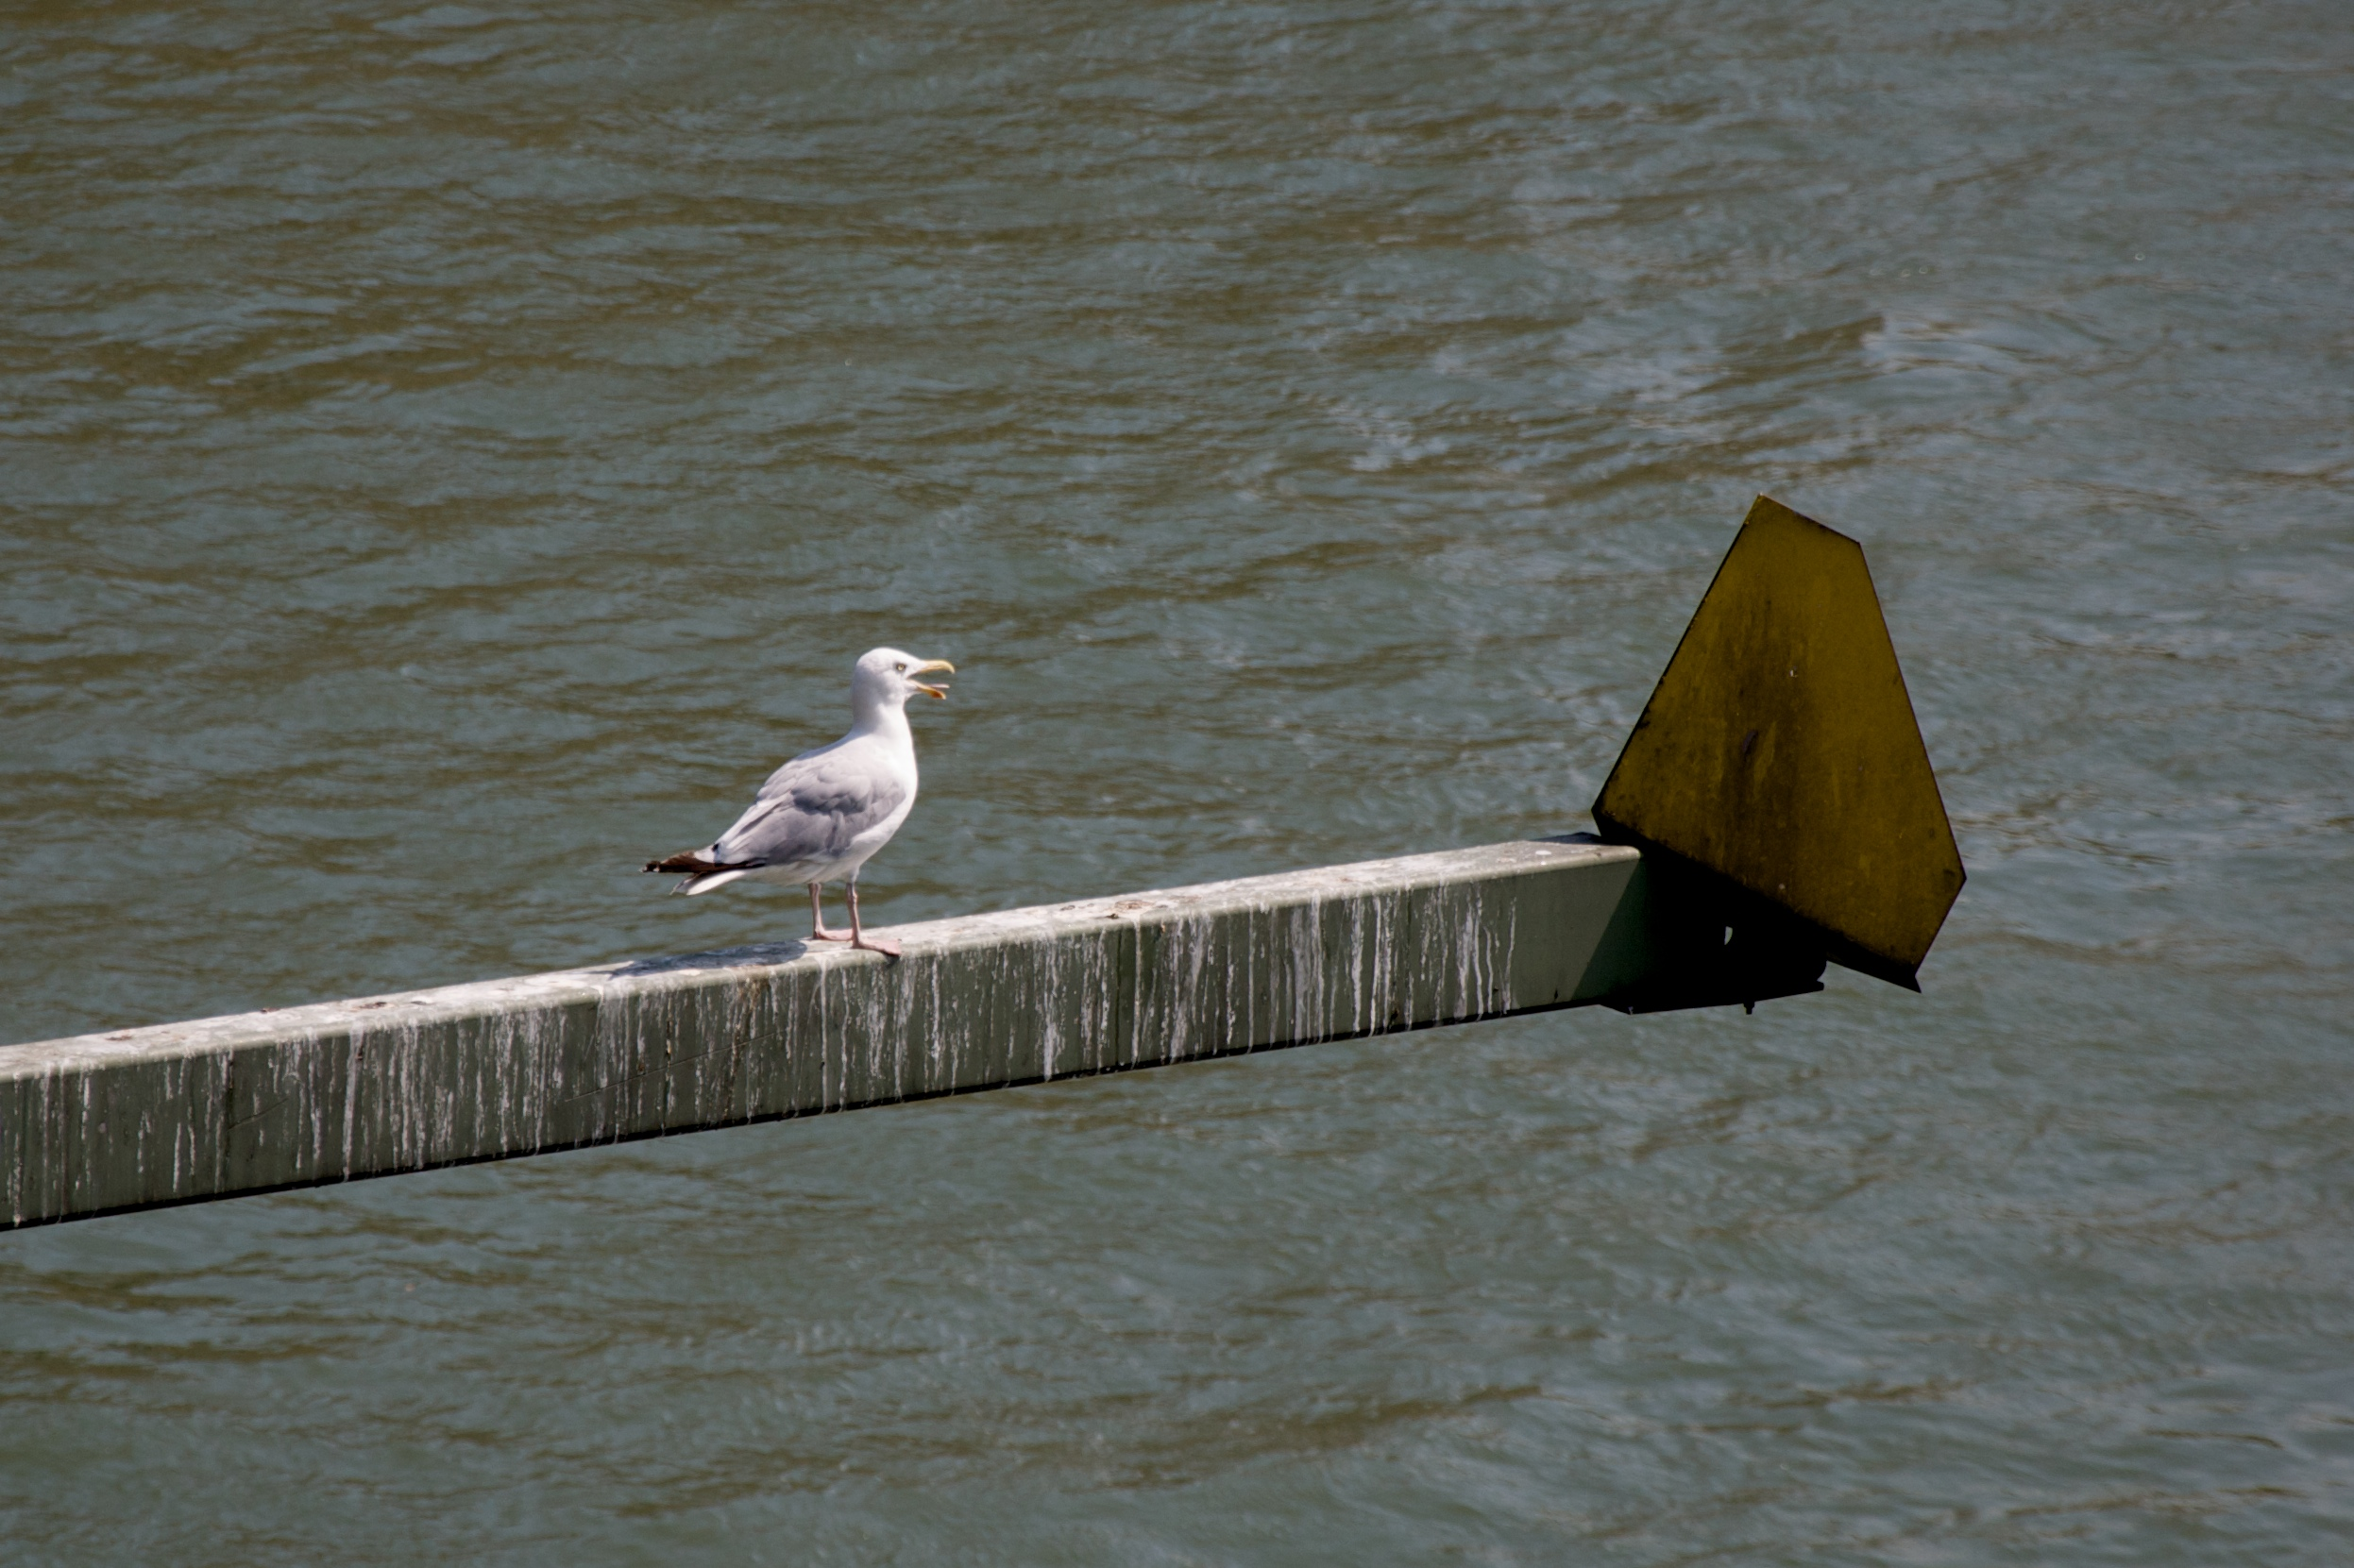 File:The old man and the seagull - Flickr - map.jpg - Wikimedia Commons